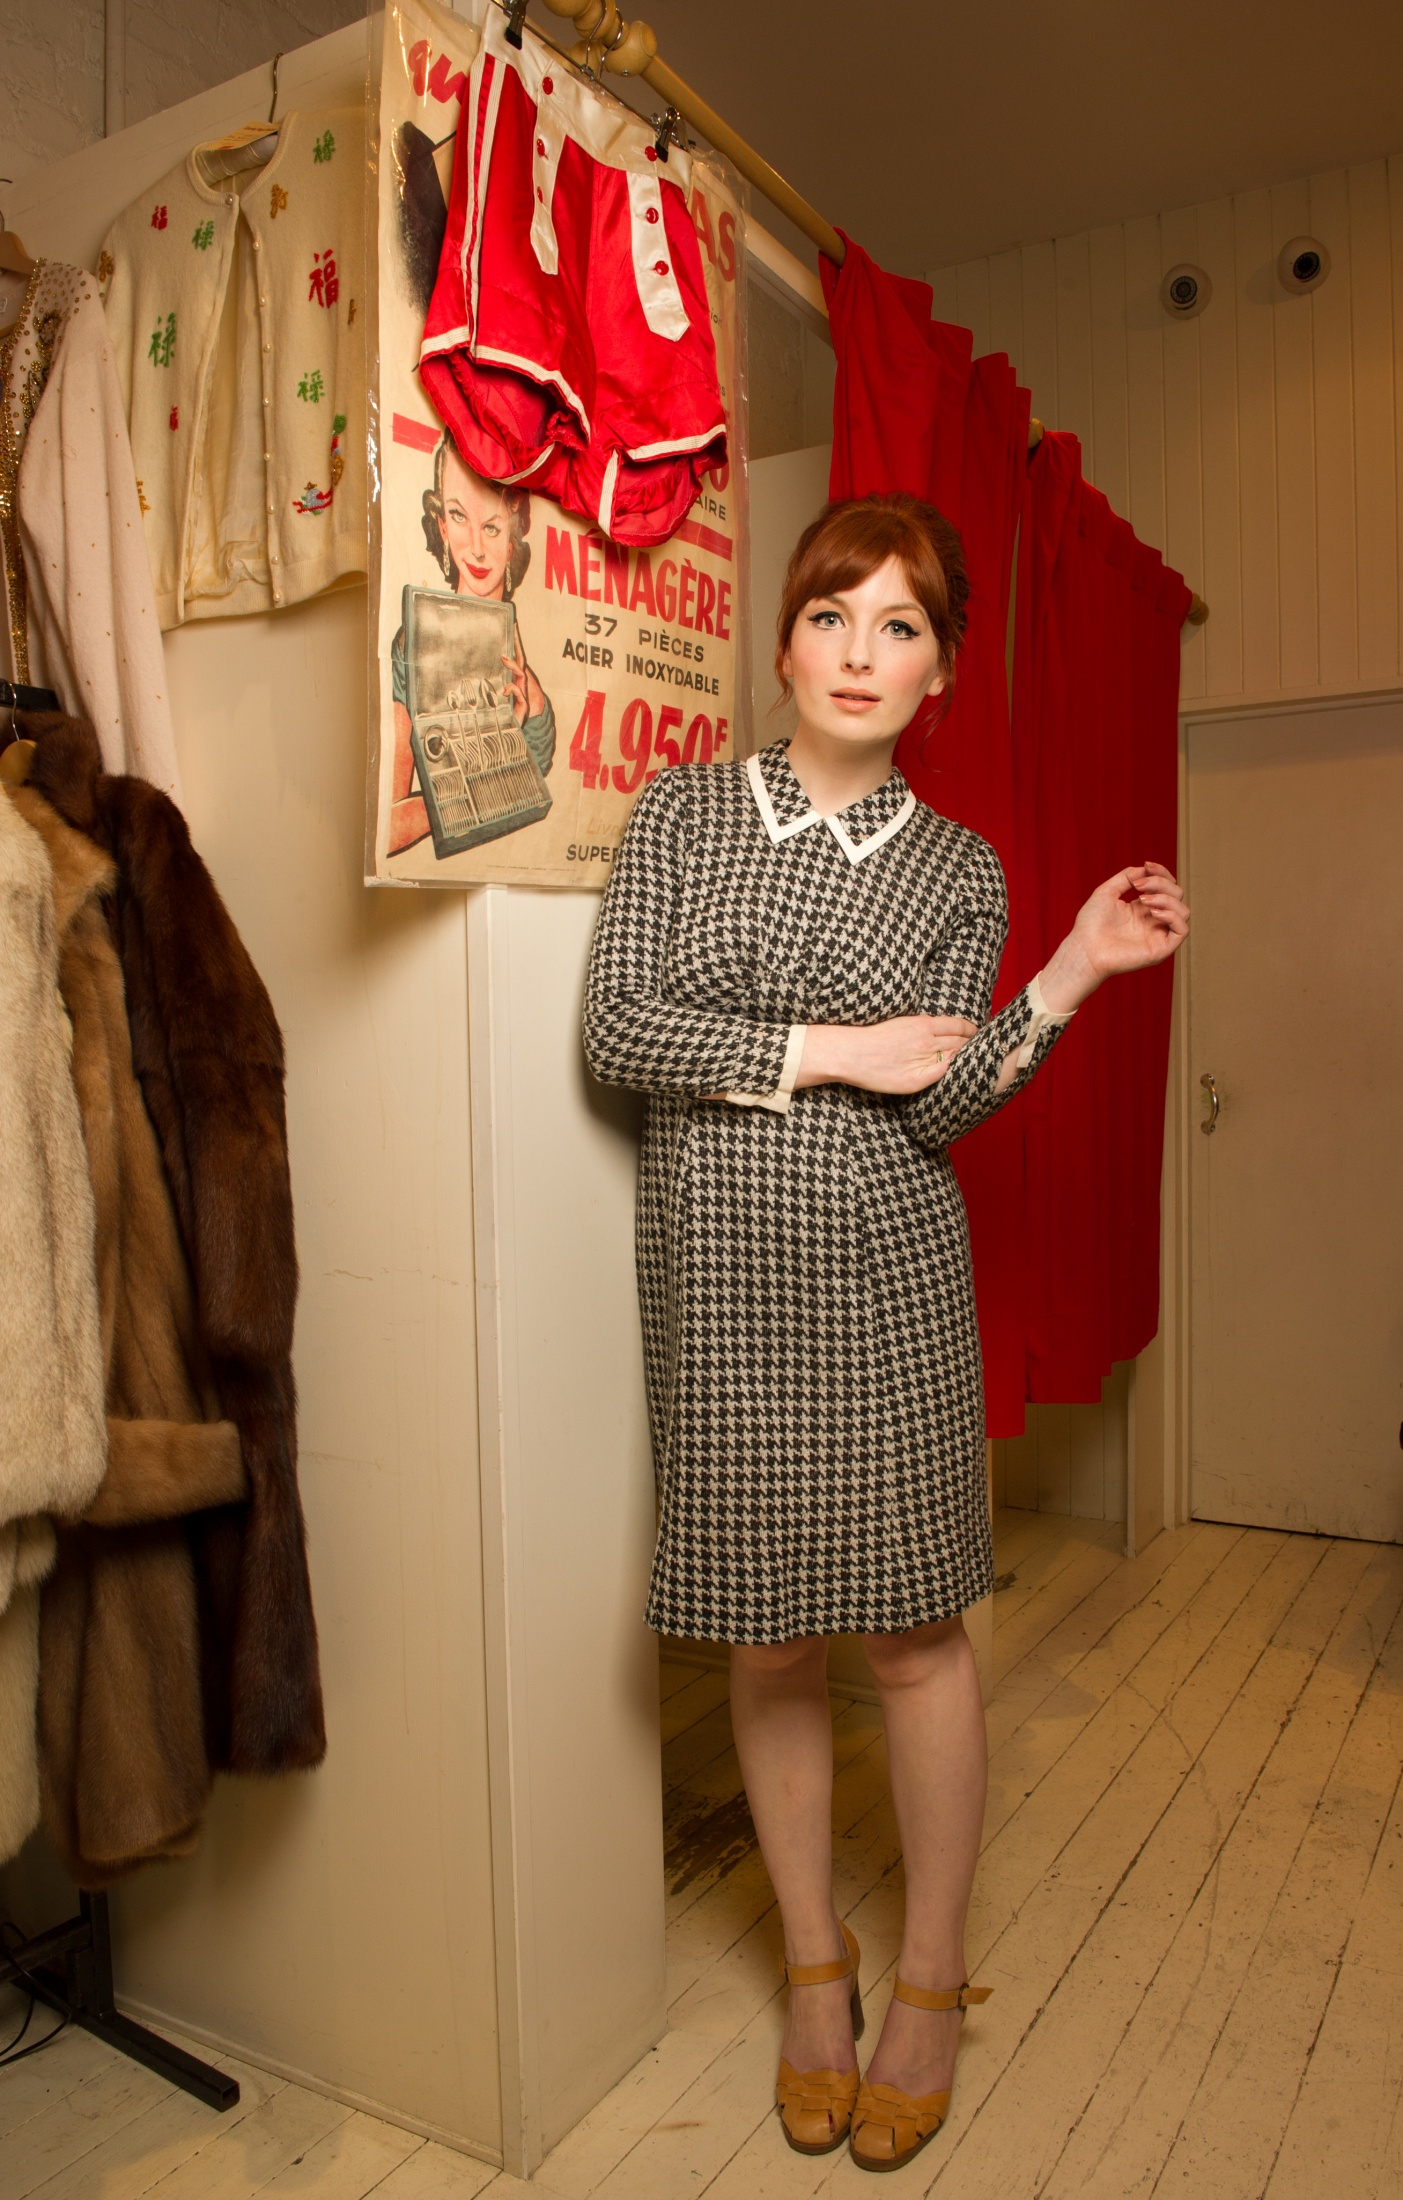 BBC Radio 1 and TV presenter Alice Levine, photographed as part of a weekly 'My Vintage Wardrobe' series shot for MyDaily.co.uk, focussing on women from different professions who share a love of vintage fashion.